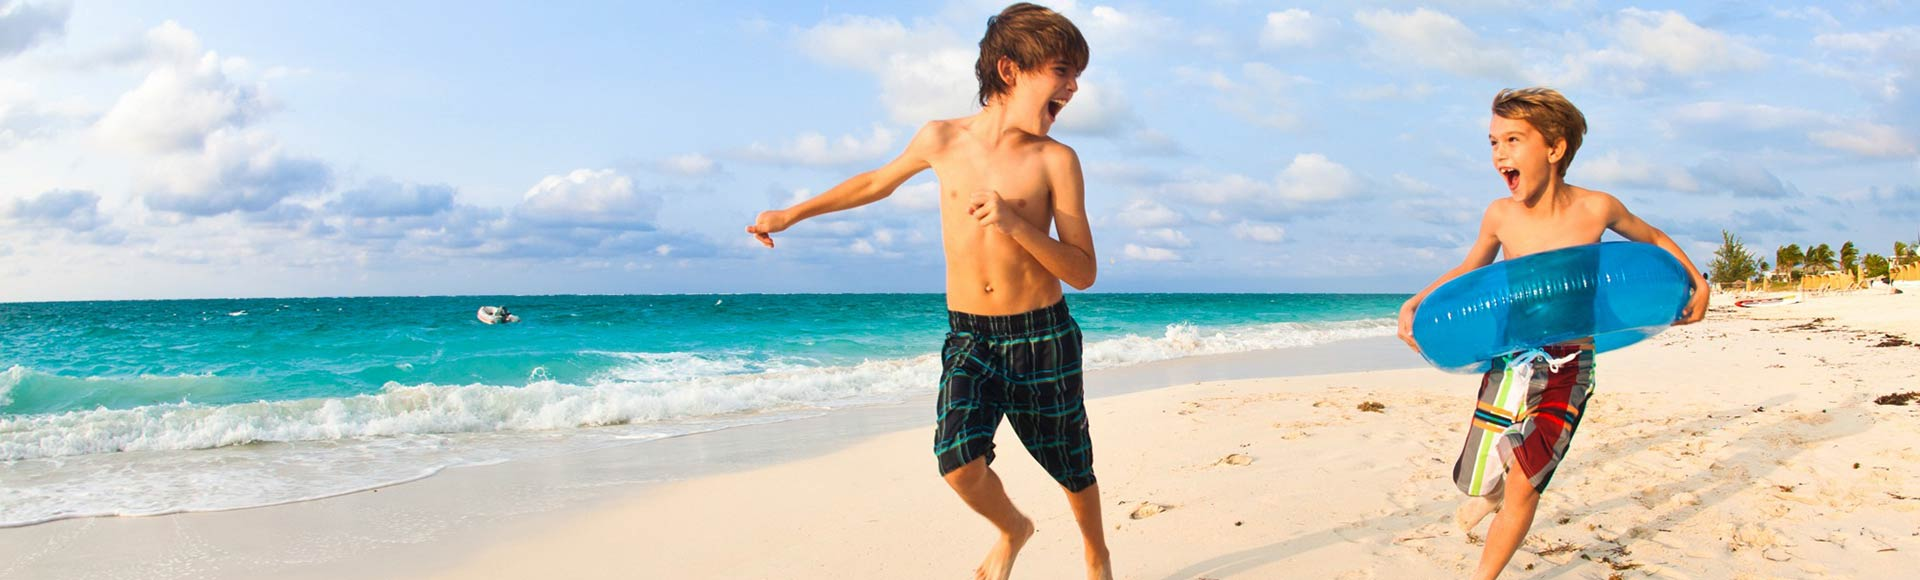 The Palms Turks & Caicos offers family vacation activities on Grace Bay.